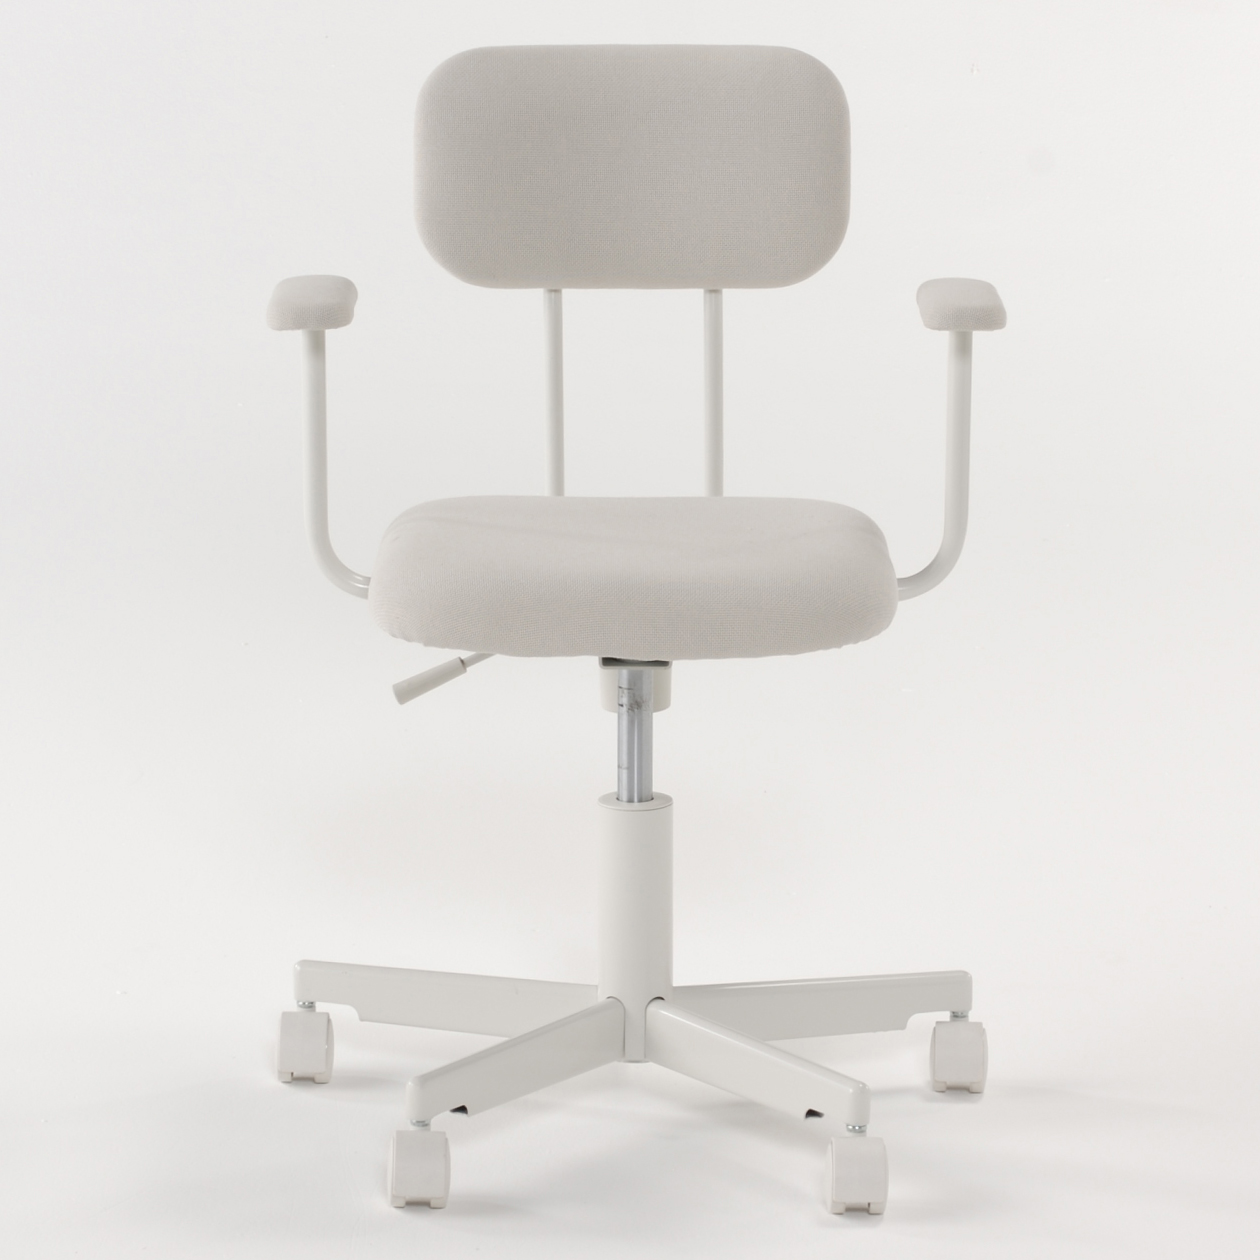 Working Chair Arm Rest For Working Chair 無印良品 Muji